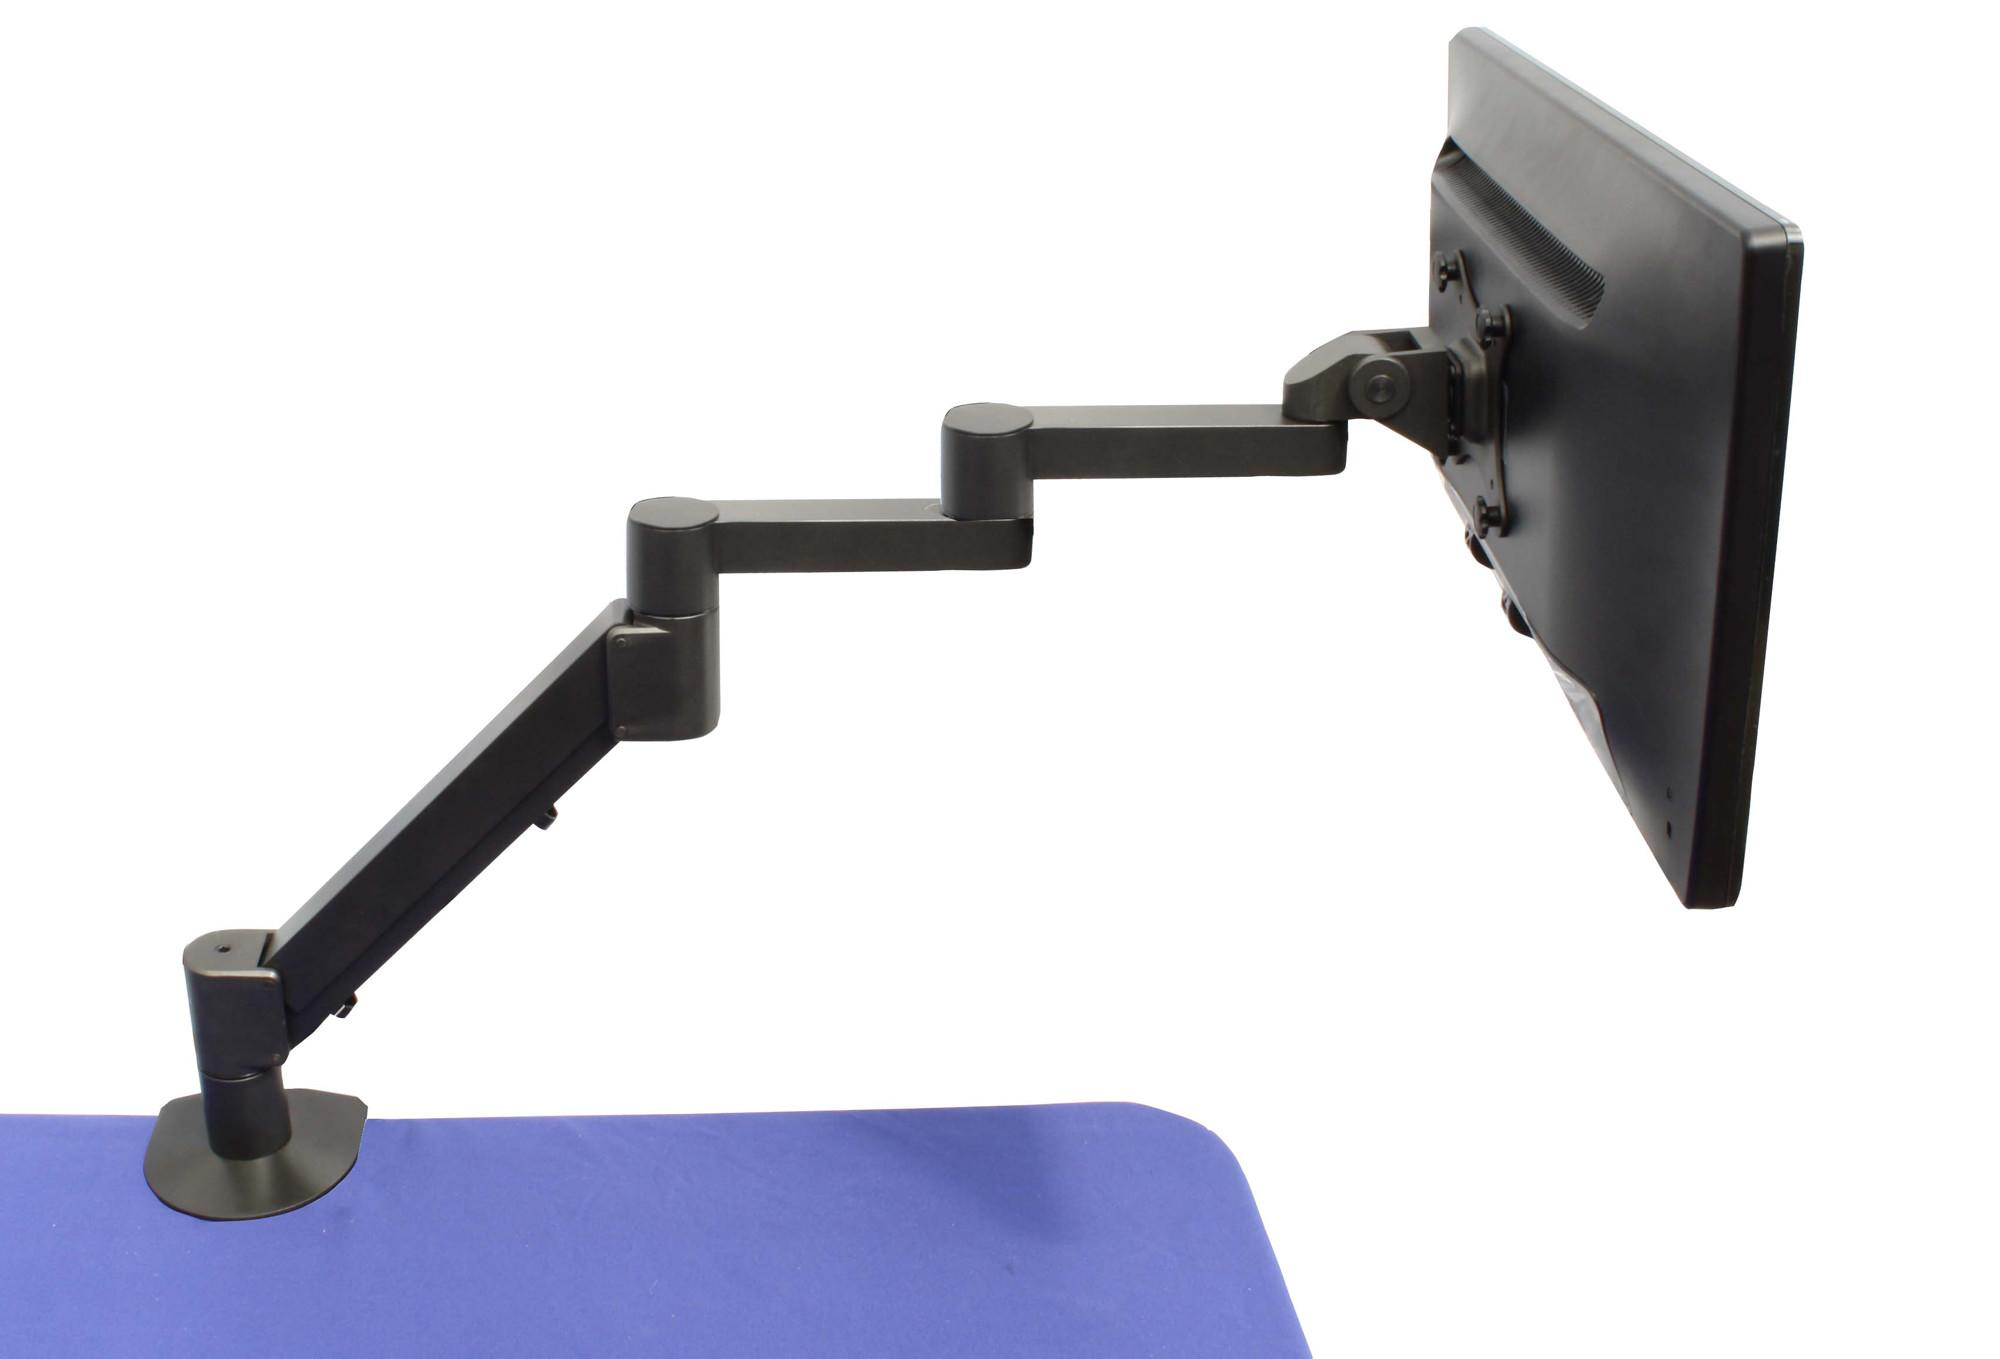 VTArm 3 Gas Assist Monitor Arm with extended reach